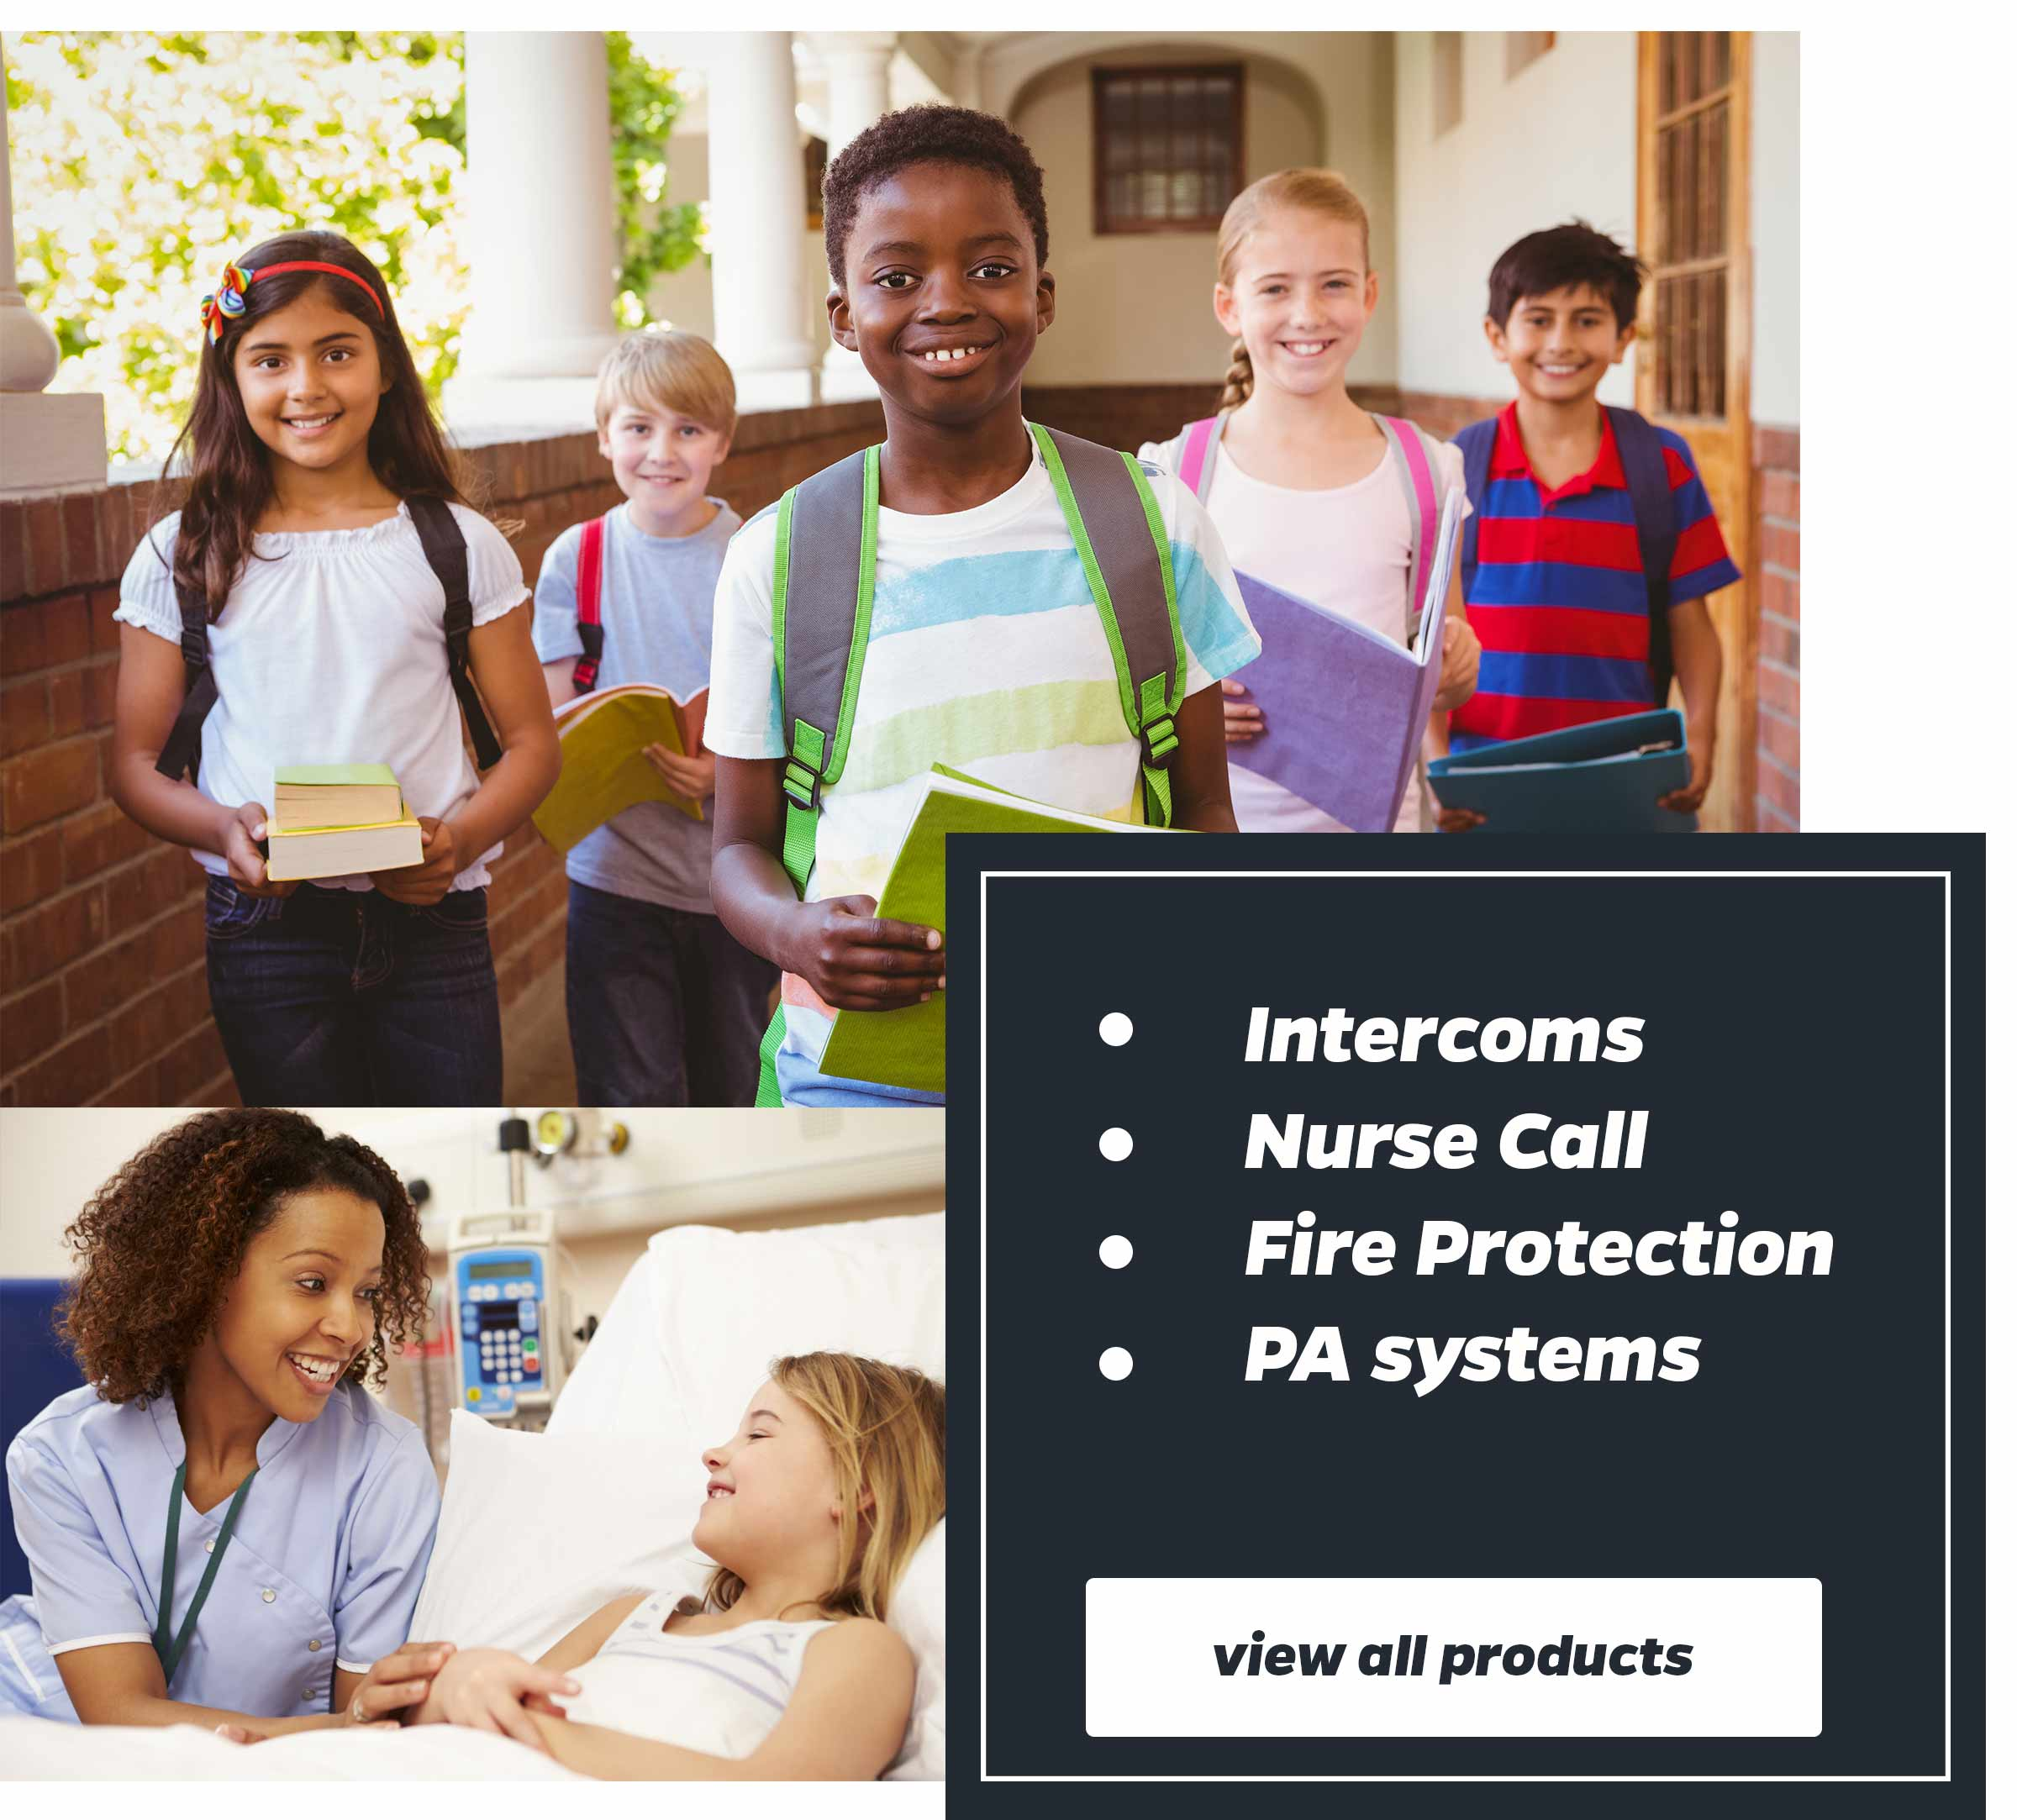 intercoms, nurse call, fire protection and PA systems south africa